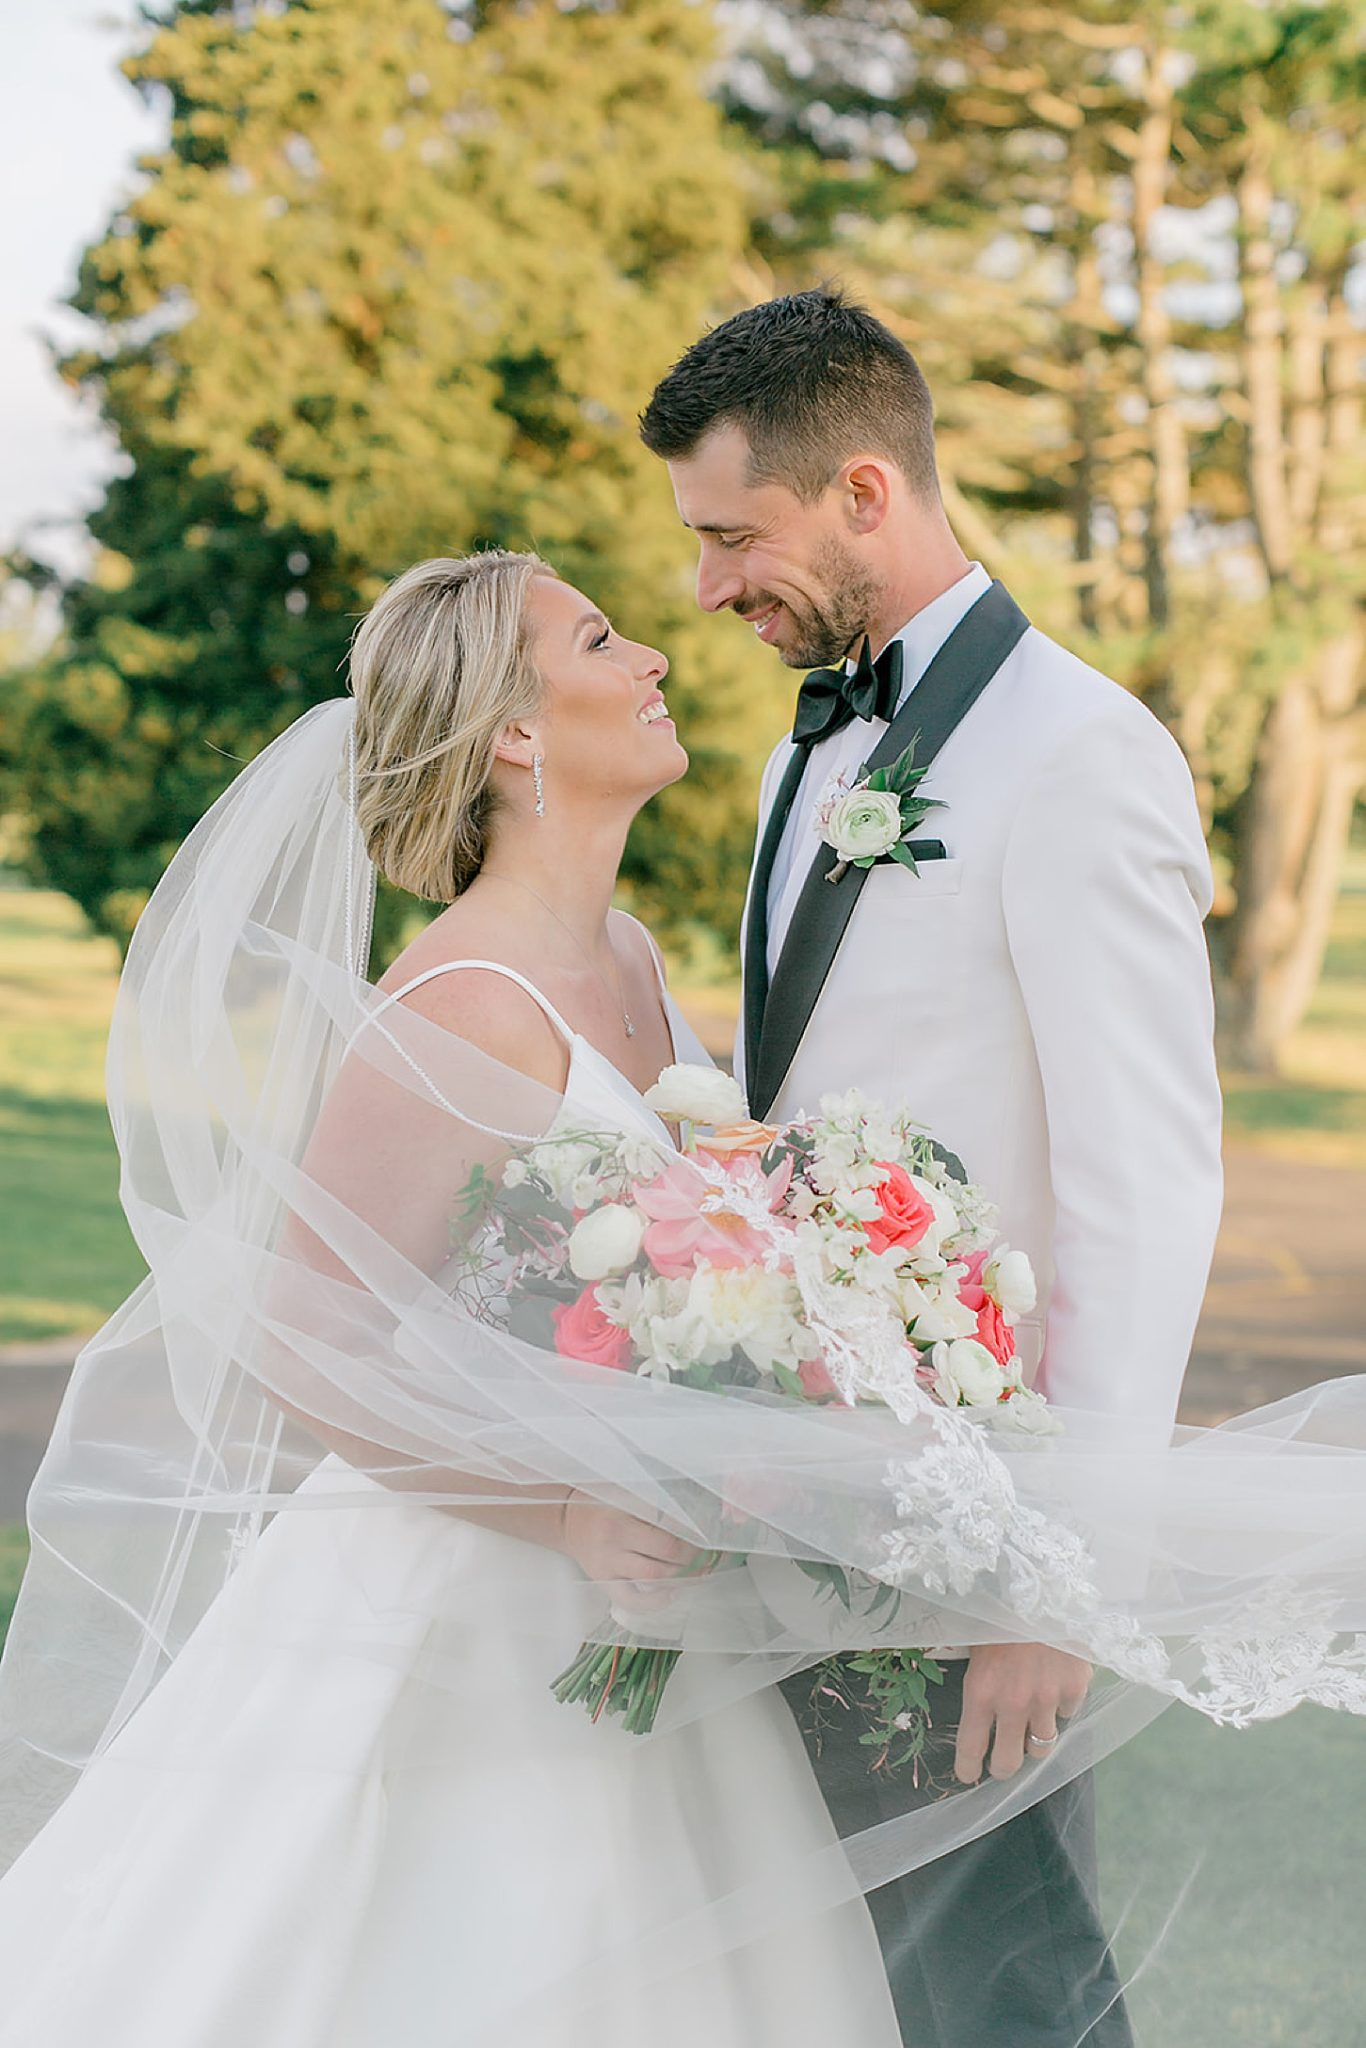 Linwood Country Club Summer Wedding Photography Studio by Magdalena Studios Jenn Kyle 0038 scaled